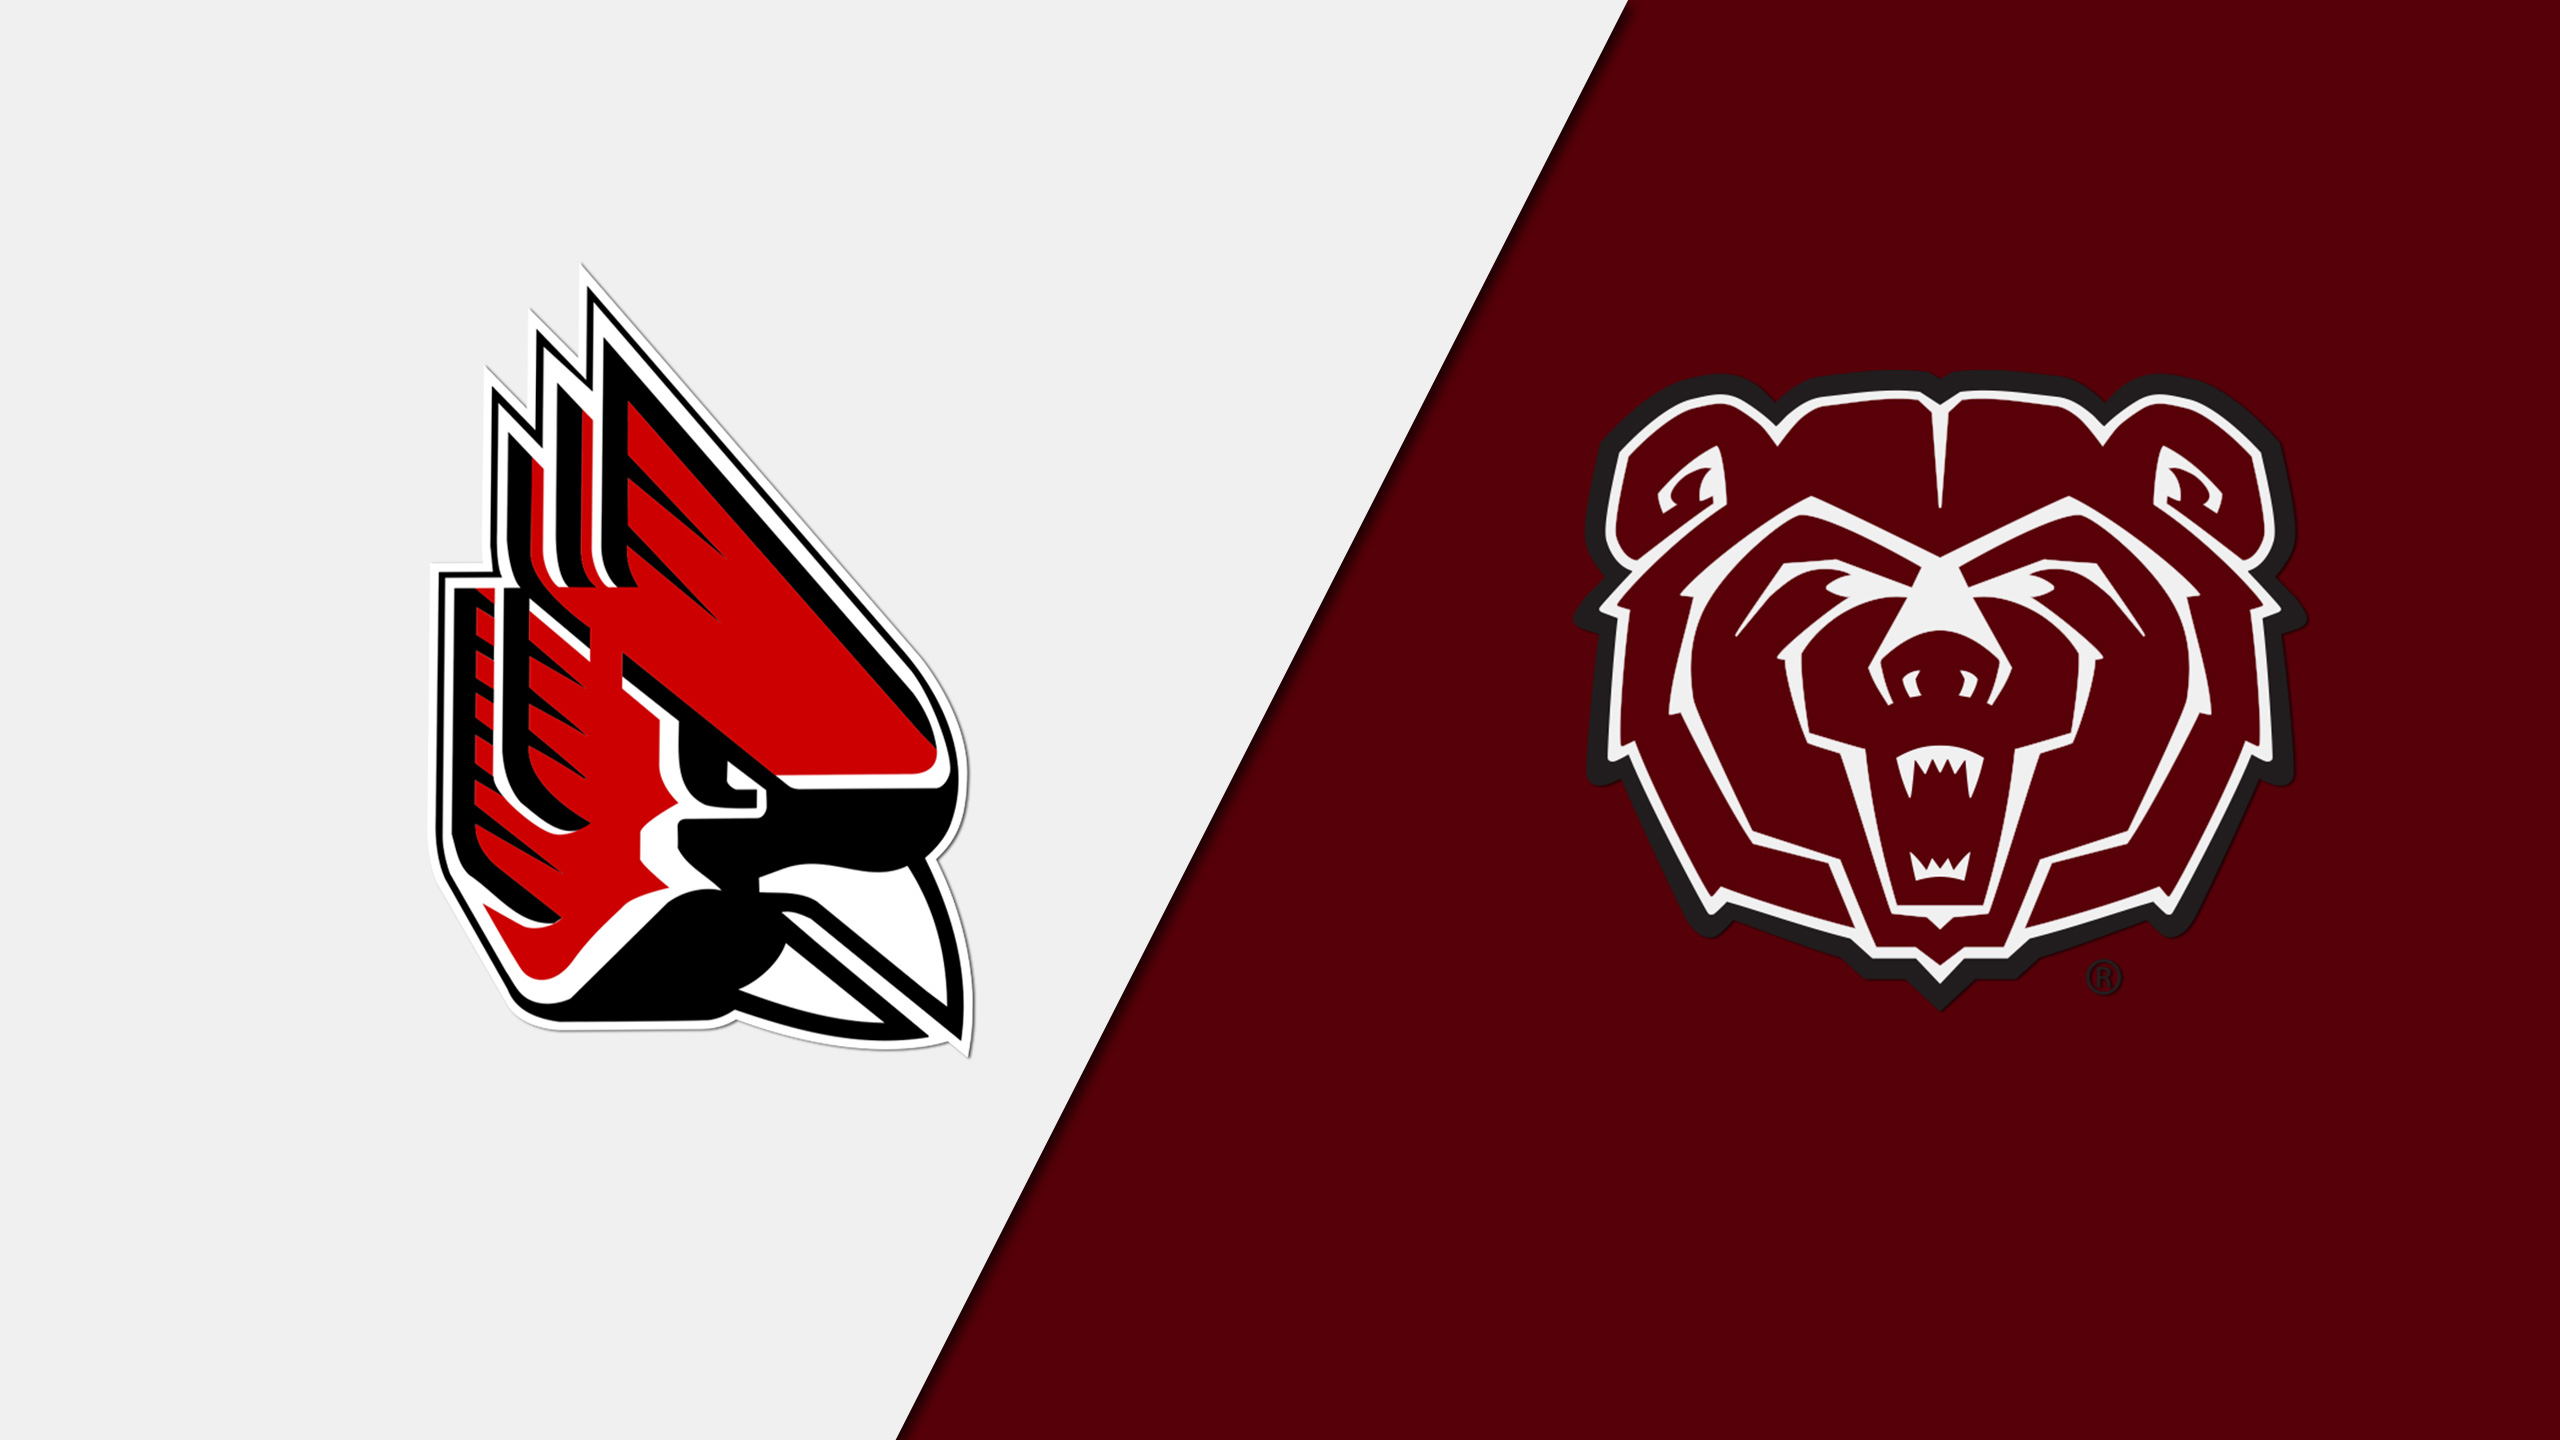 Ball State vs. Missouri State (W Basketball)